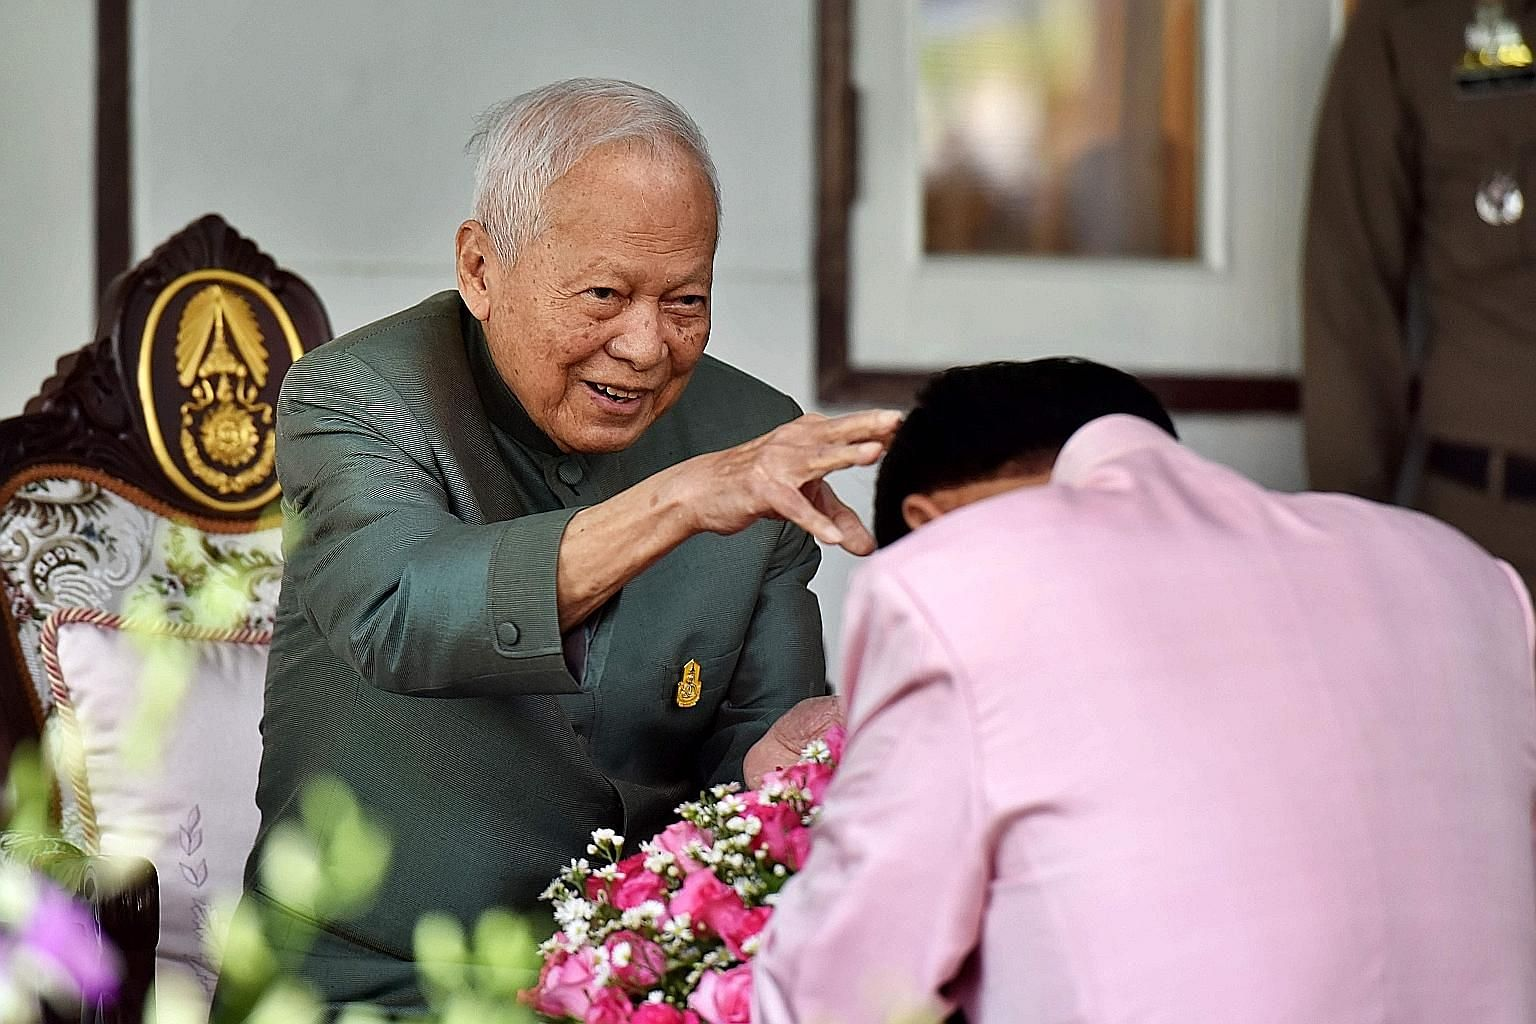 Thailand's former general and prime minister Prem Tinsulanonda receiving PM Prayut Chan-o-cha at a visit during Songkran, the Thai new year, in April last year. Senior army officers would pay their respects to Mr Prem, who was a towering figure in th